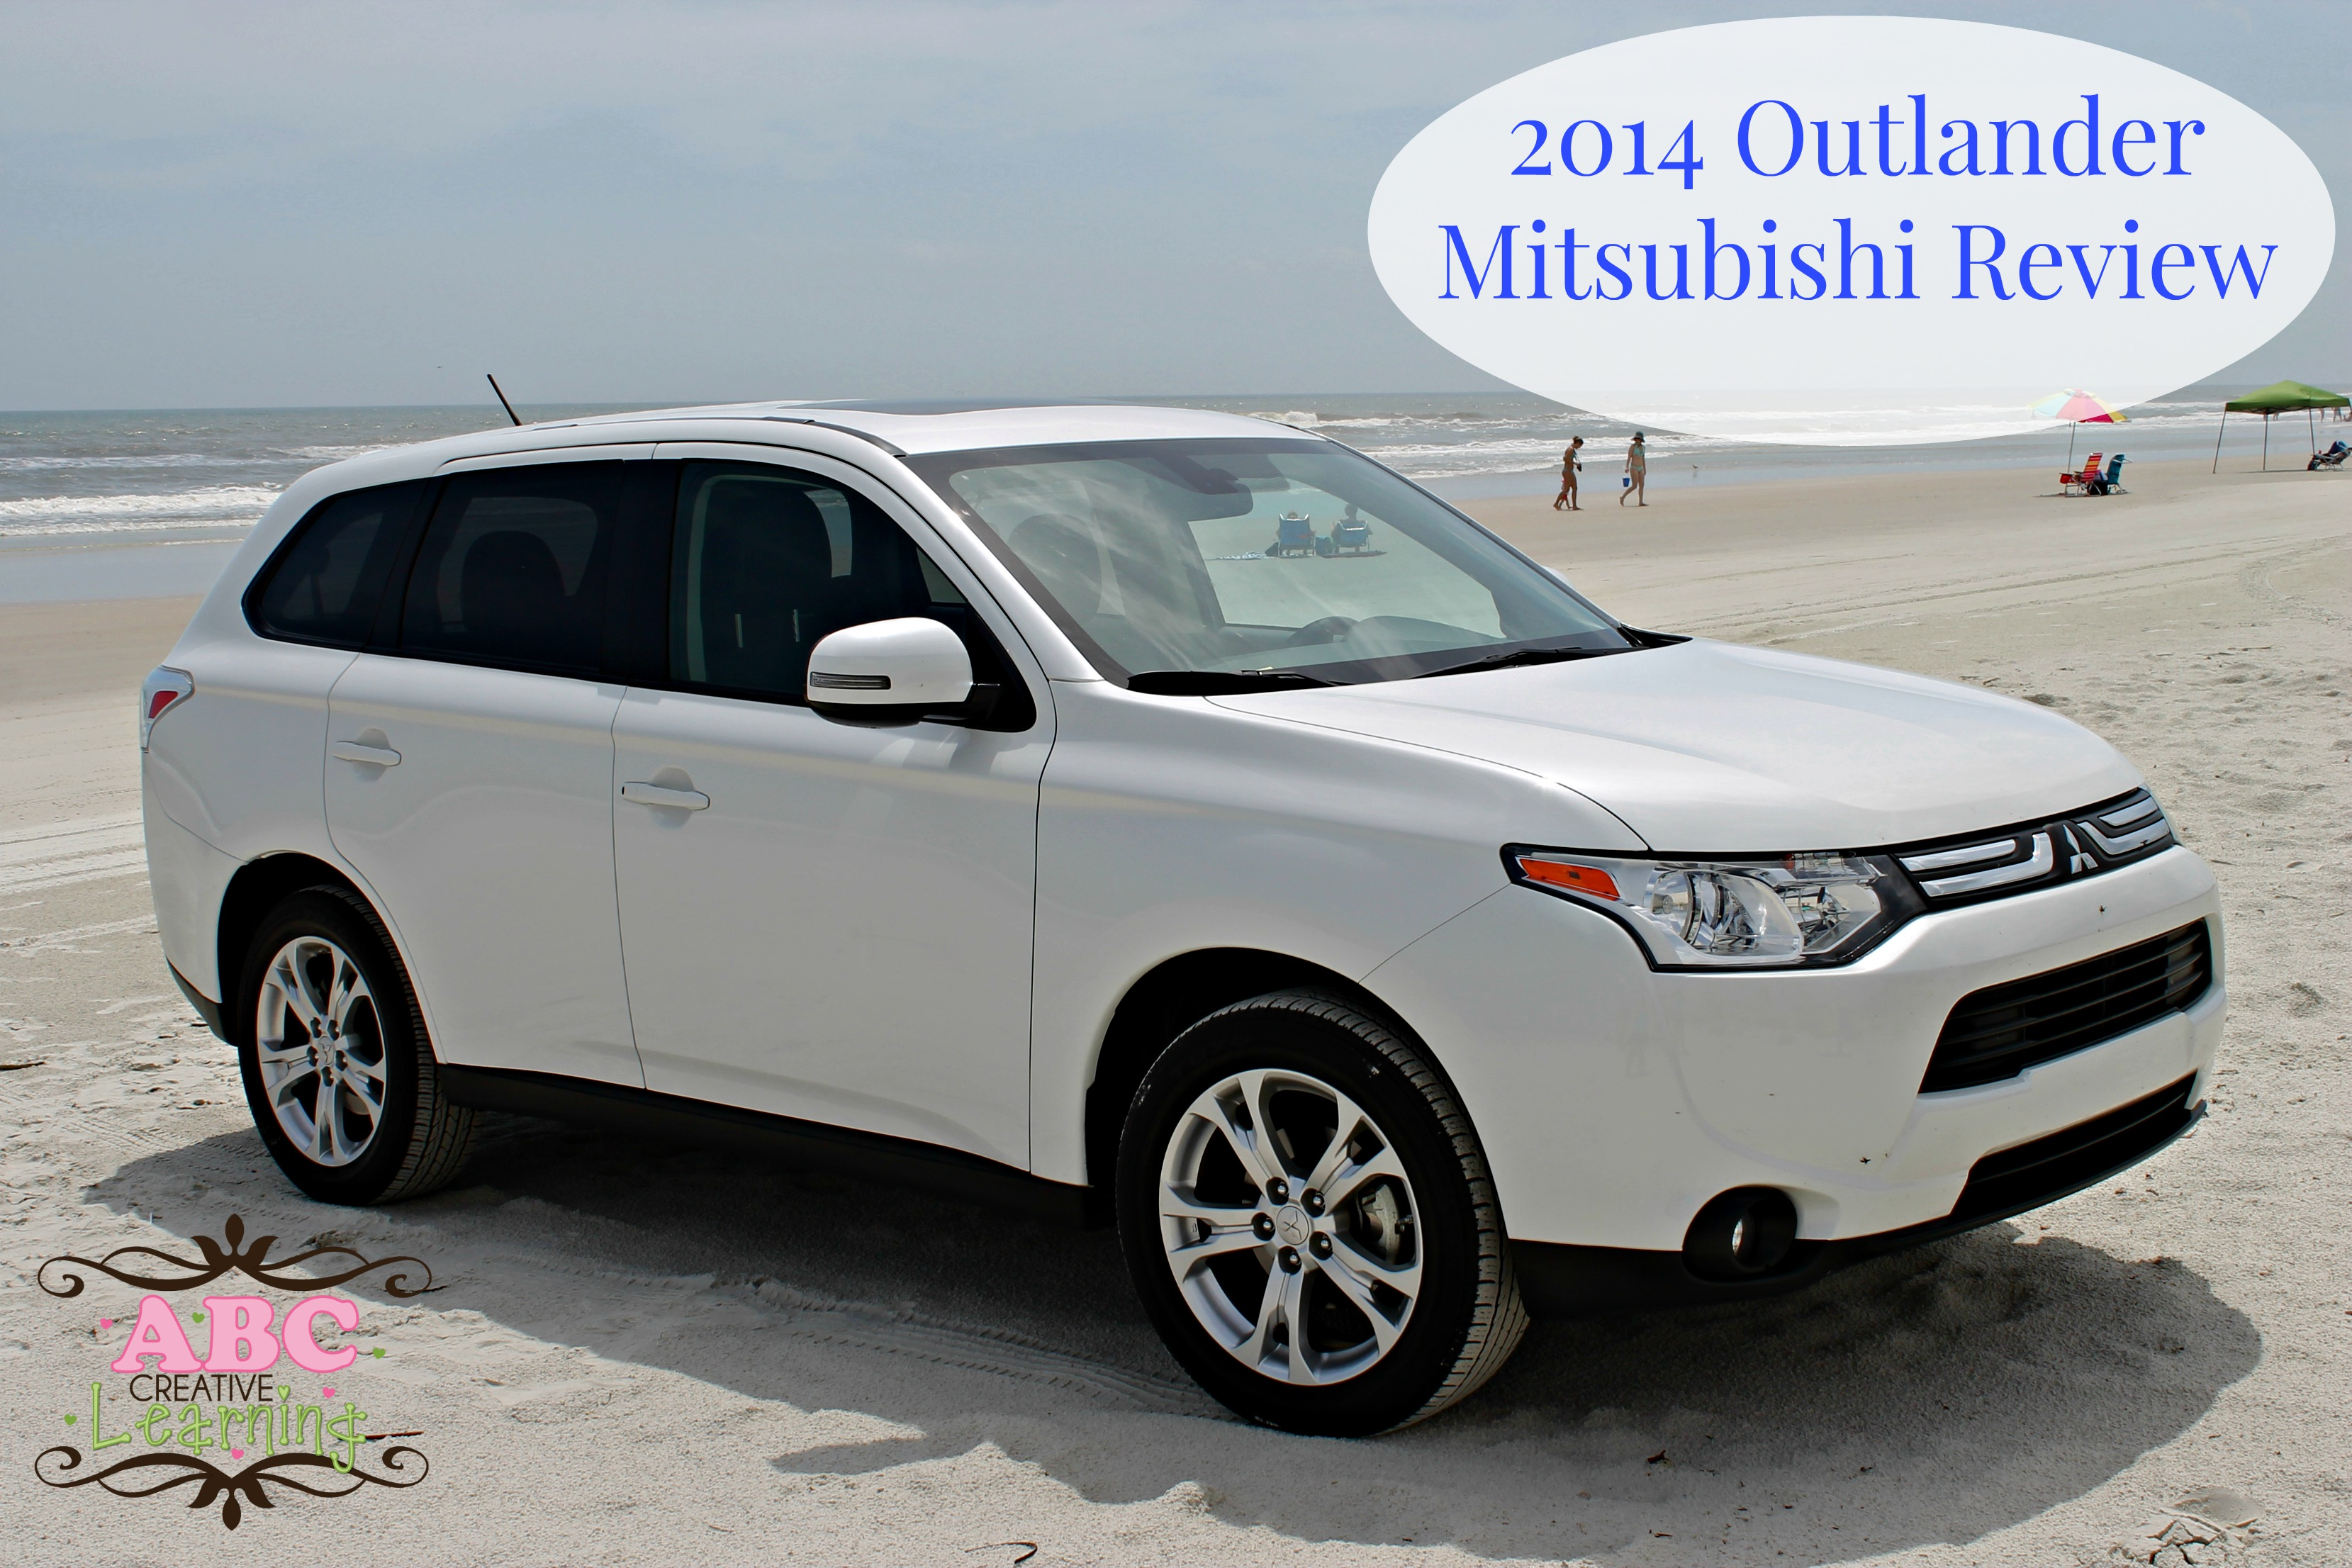 the 2014 mitsubishi outlander se suv family review plus our favorite features. Black Bedroom Furniture Sets. Home Design Ideas